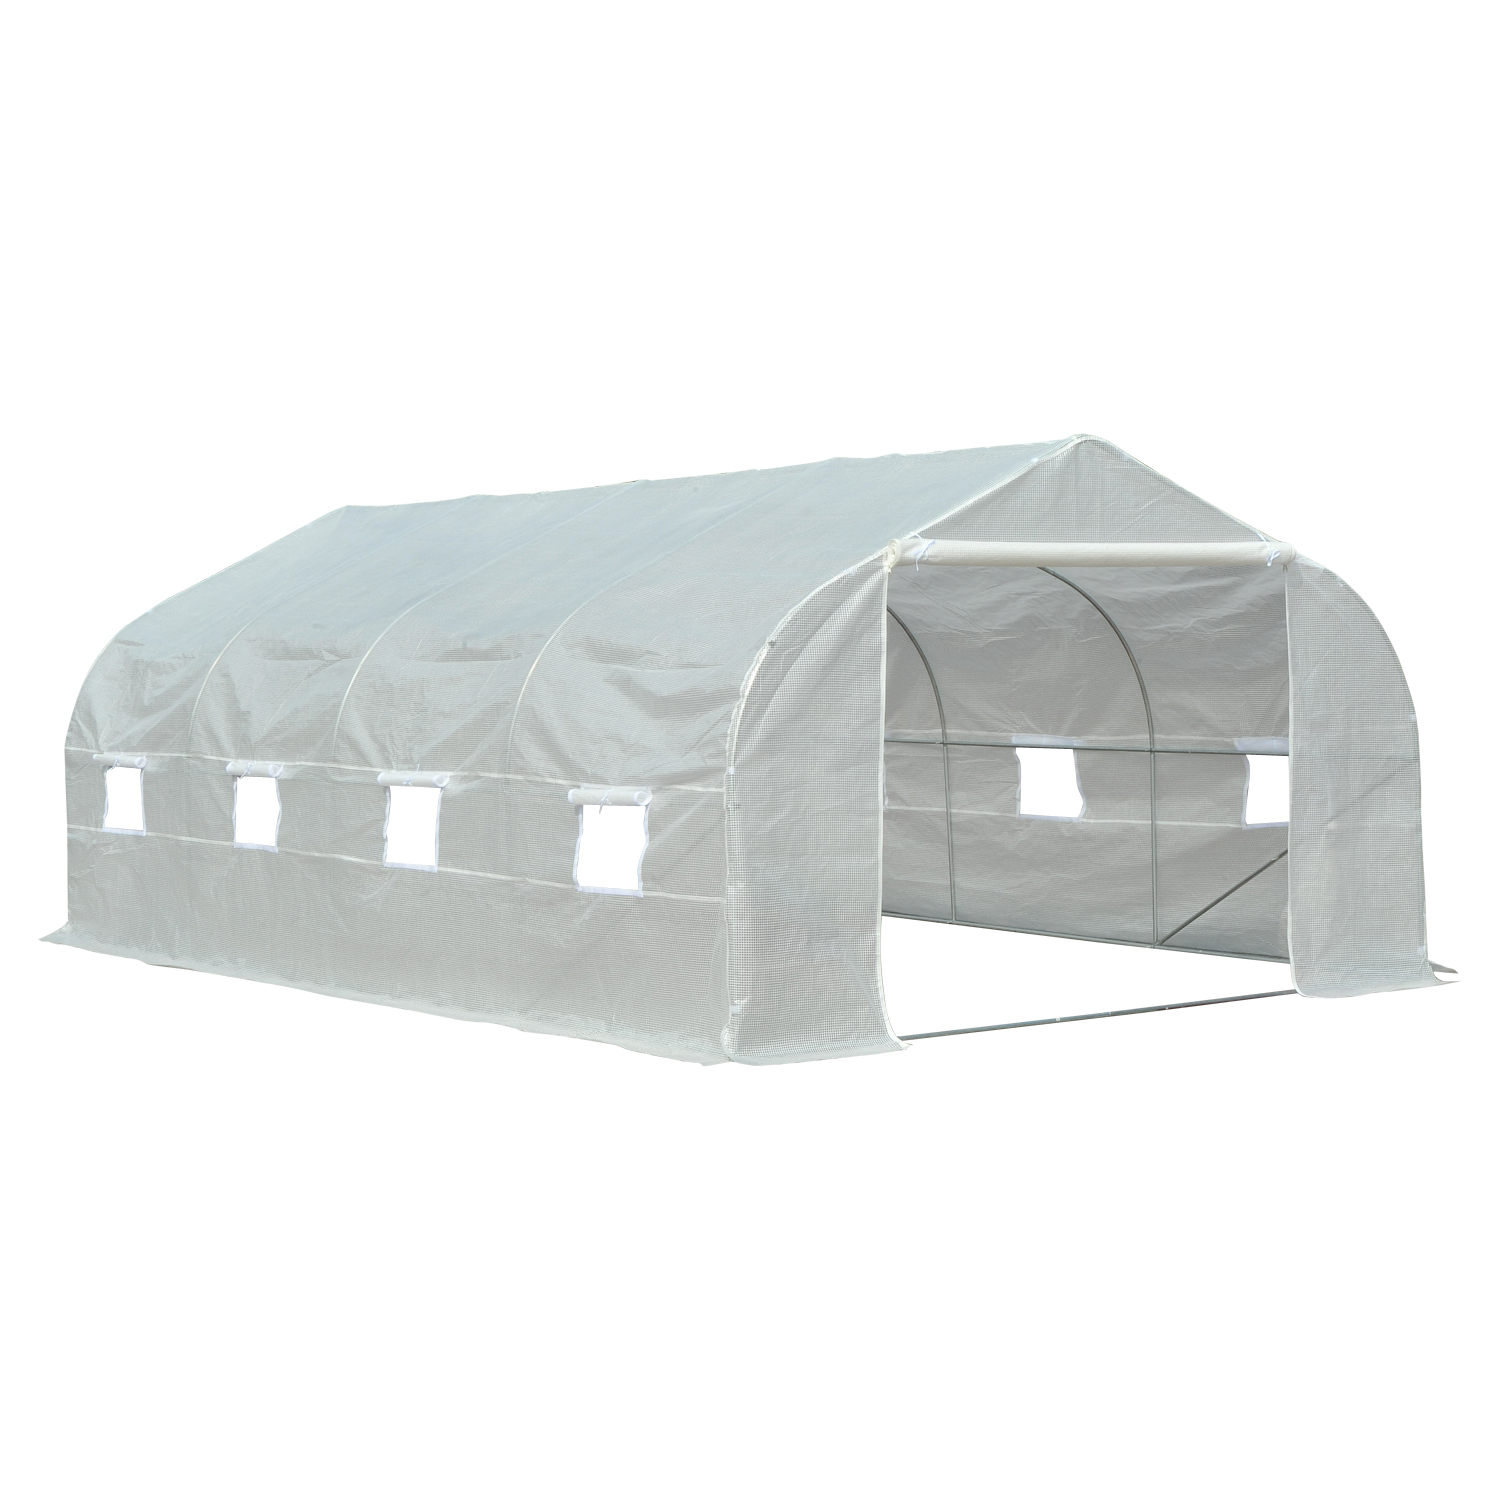 Outsunny 19.5 Portable Walk-In Garden Greenhouse White by Aosom